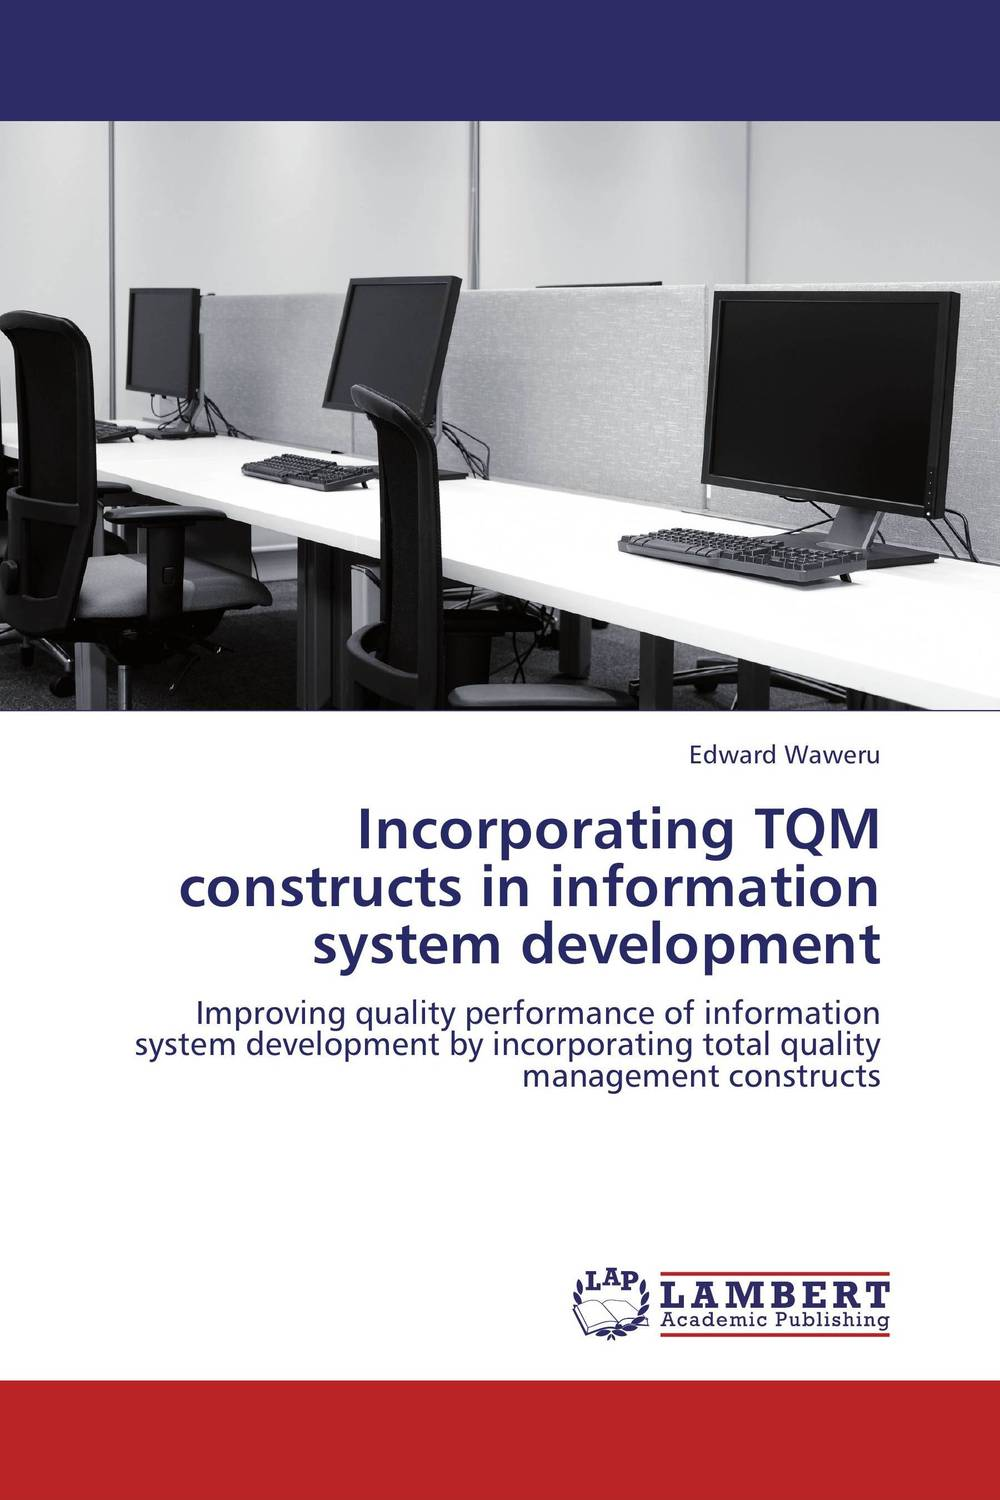 Incorporating TQM constructs in information system development dc1335b b programmers development systems mr li